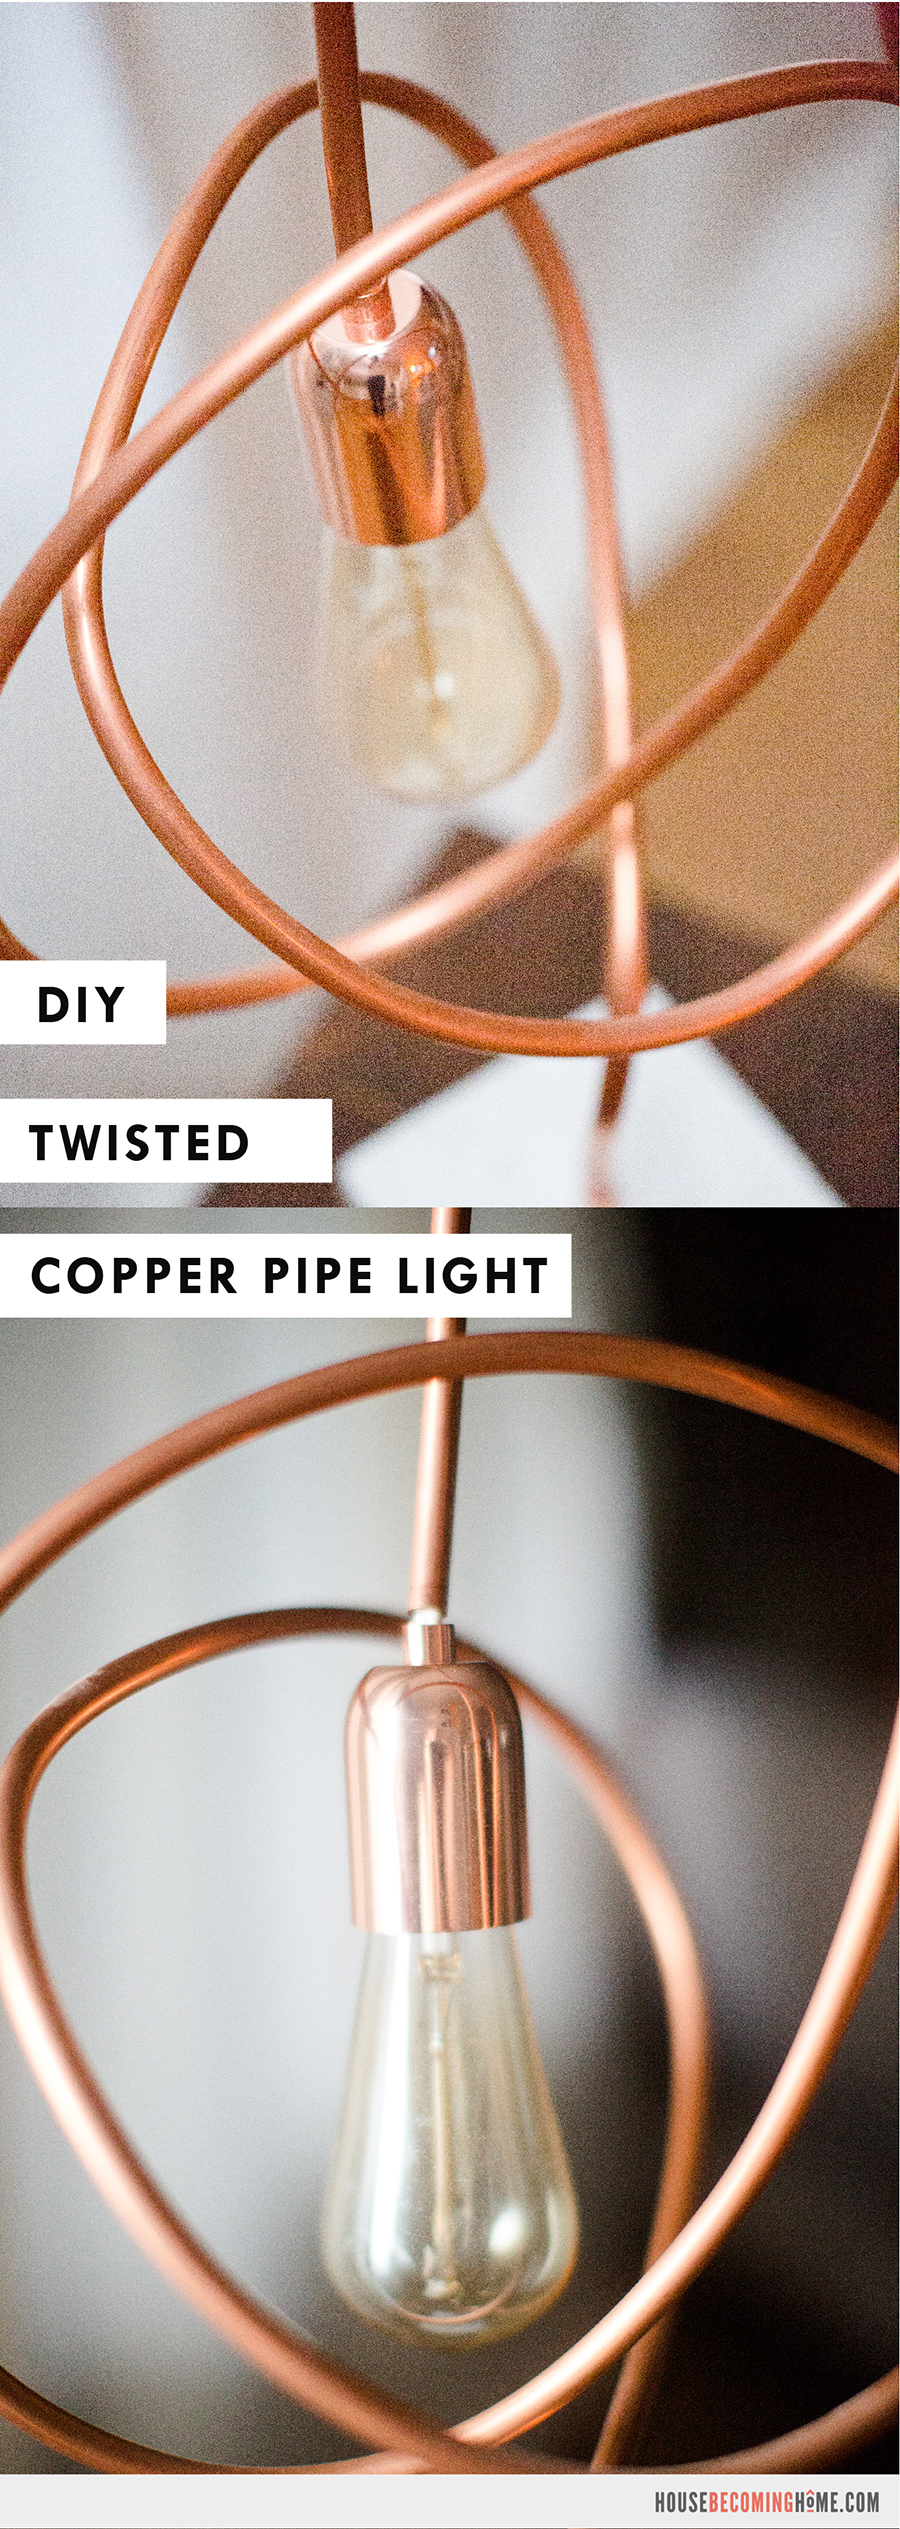 DIY Twisted Copper Pipe Light with Edison Bulb - DIY Instructions